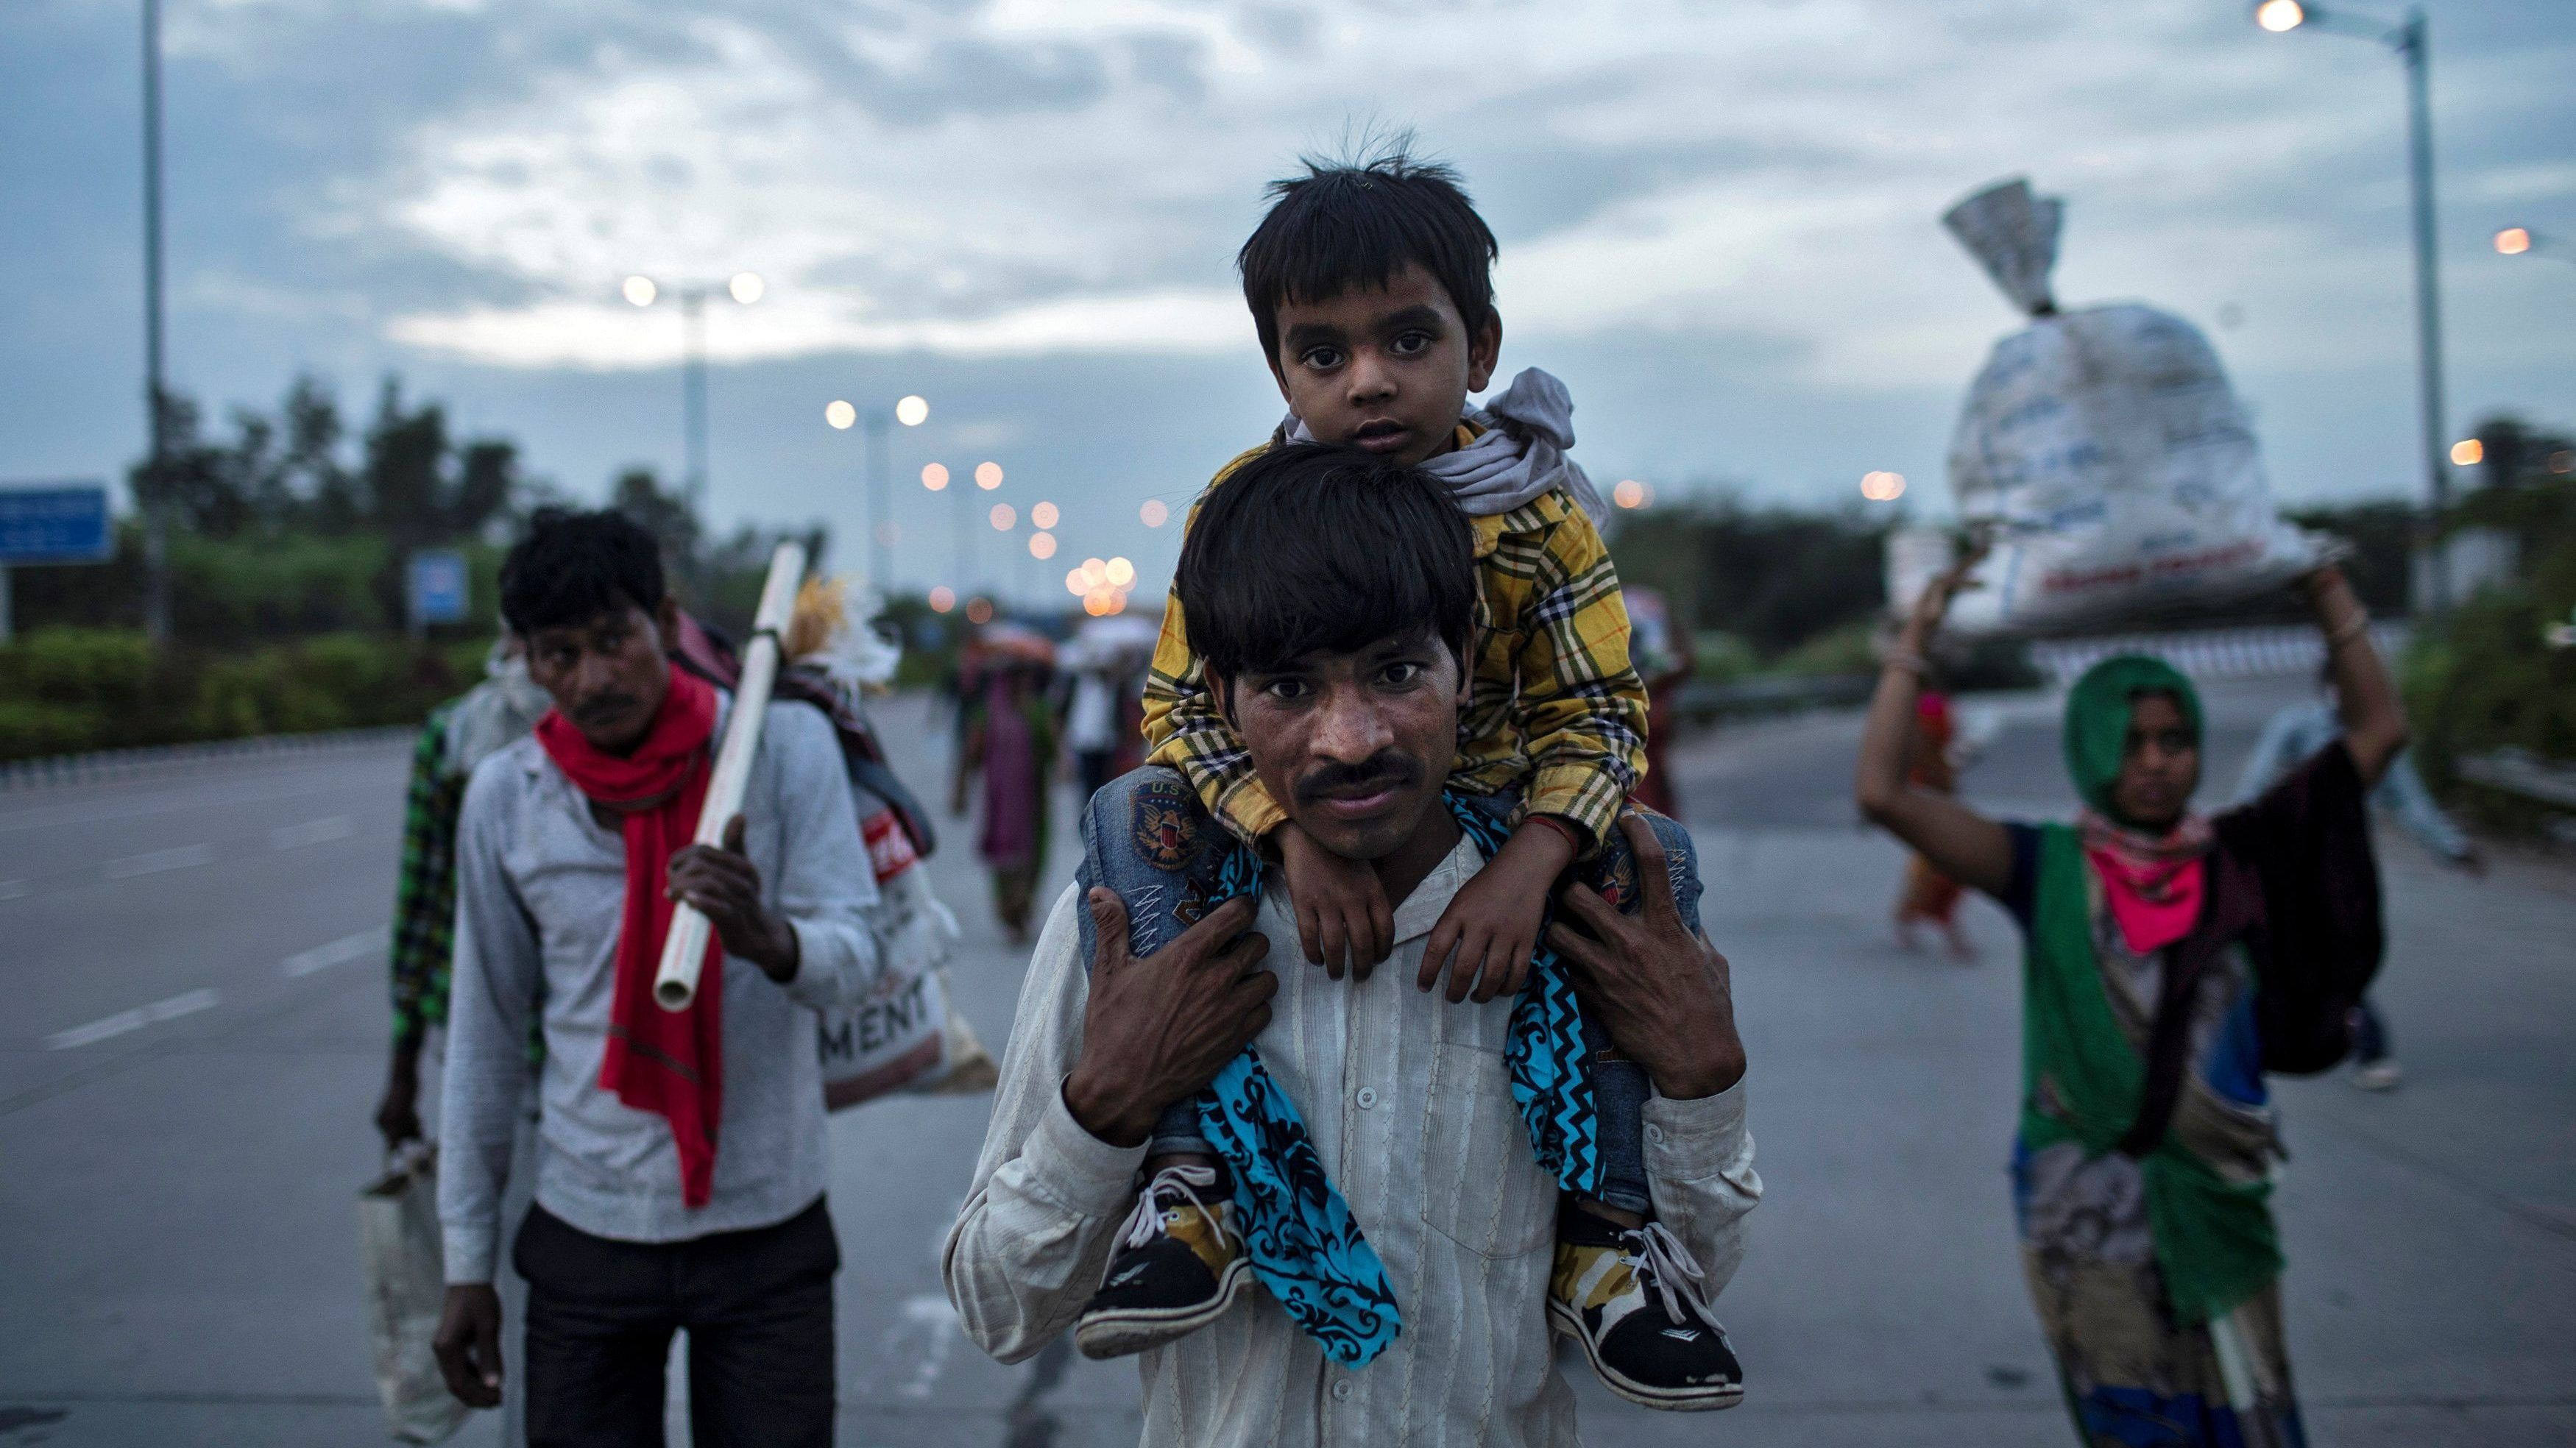 Photos: In locked down India, poor migrants are on a long march back home